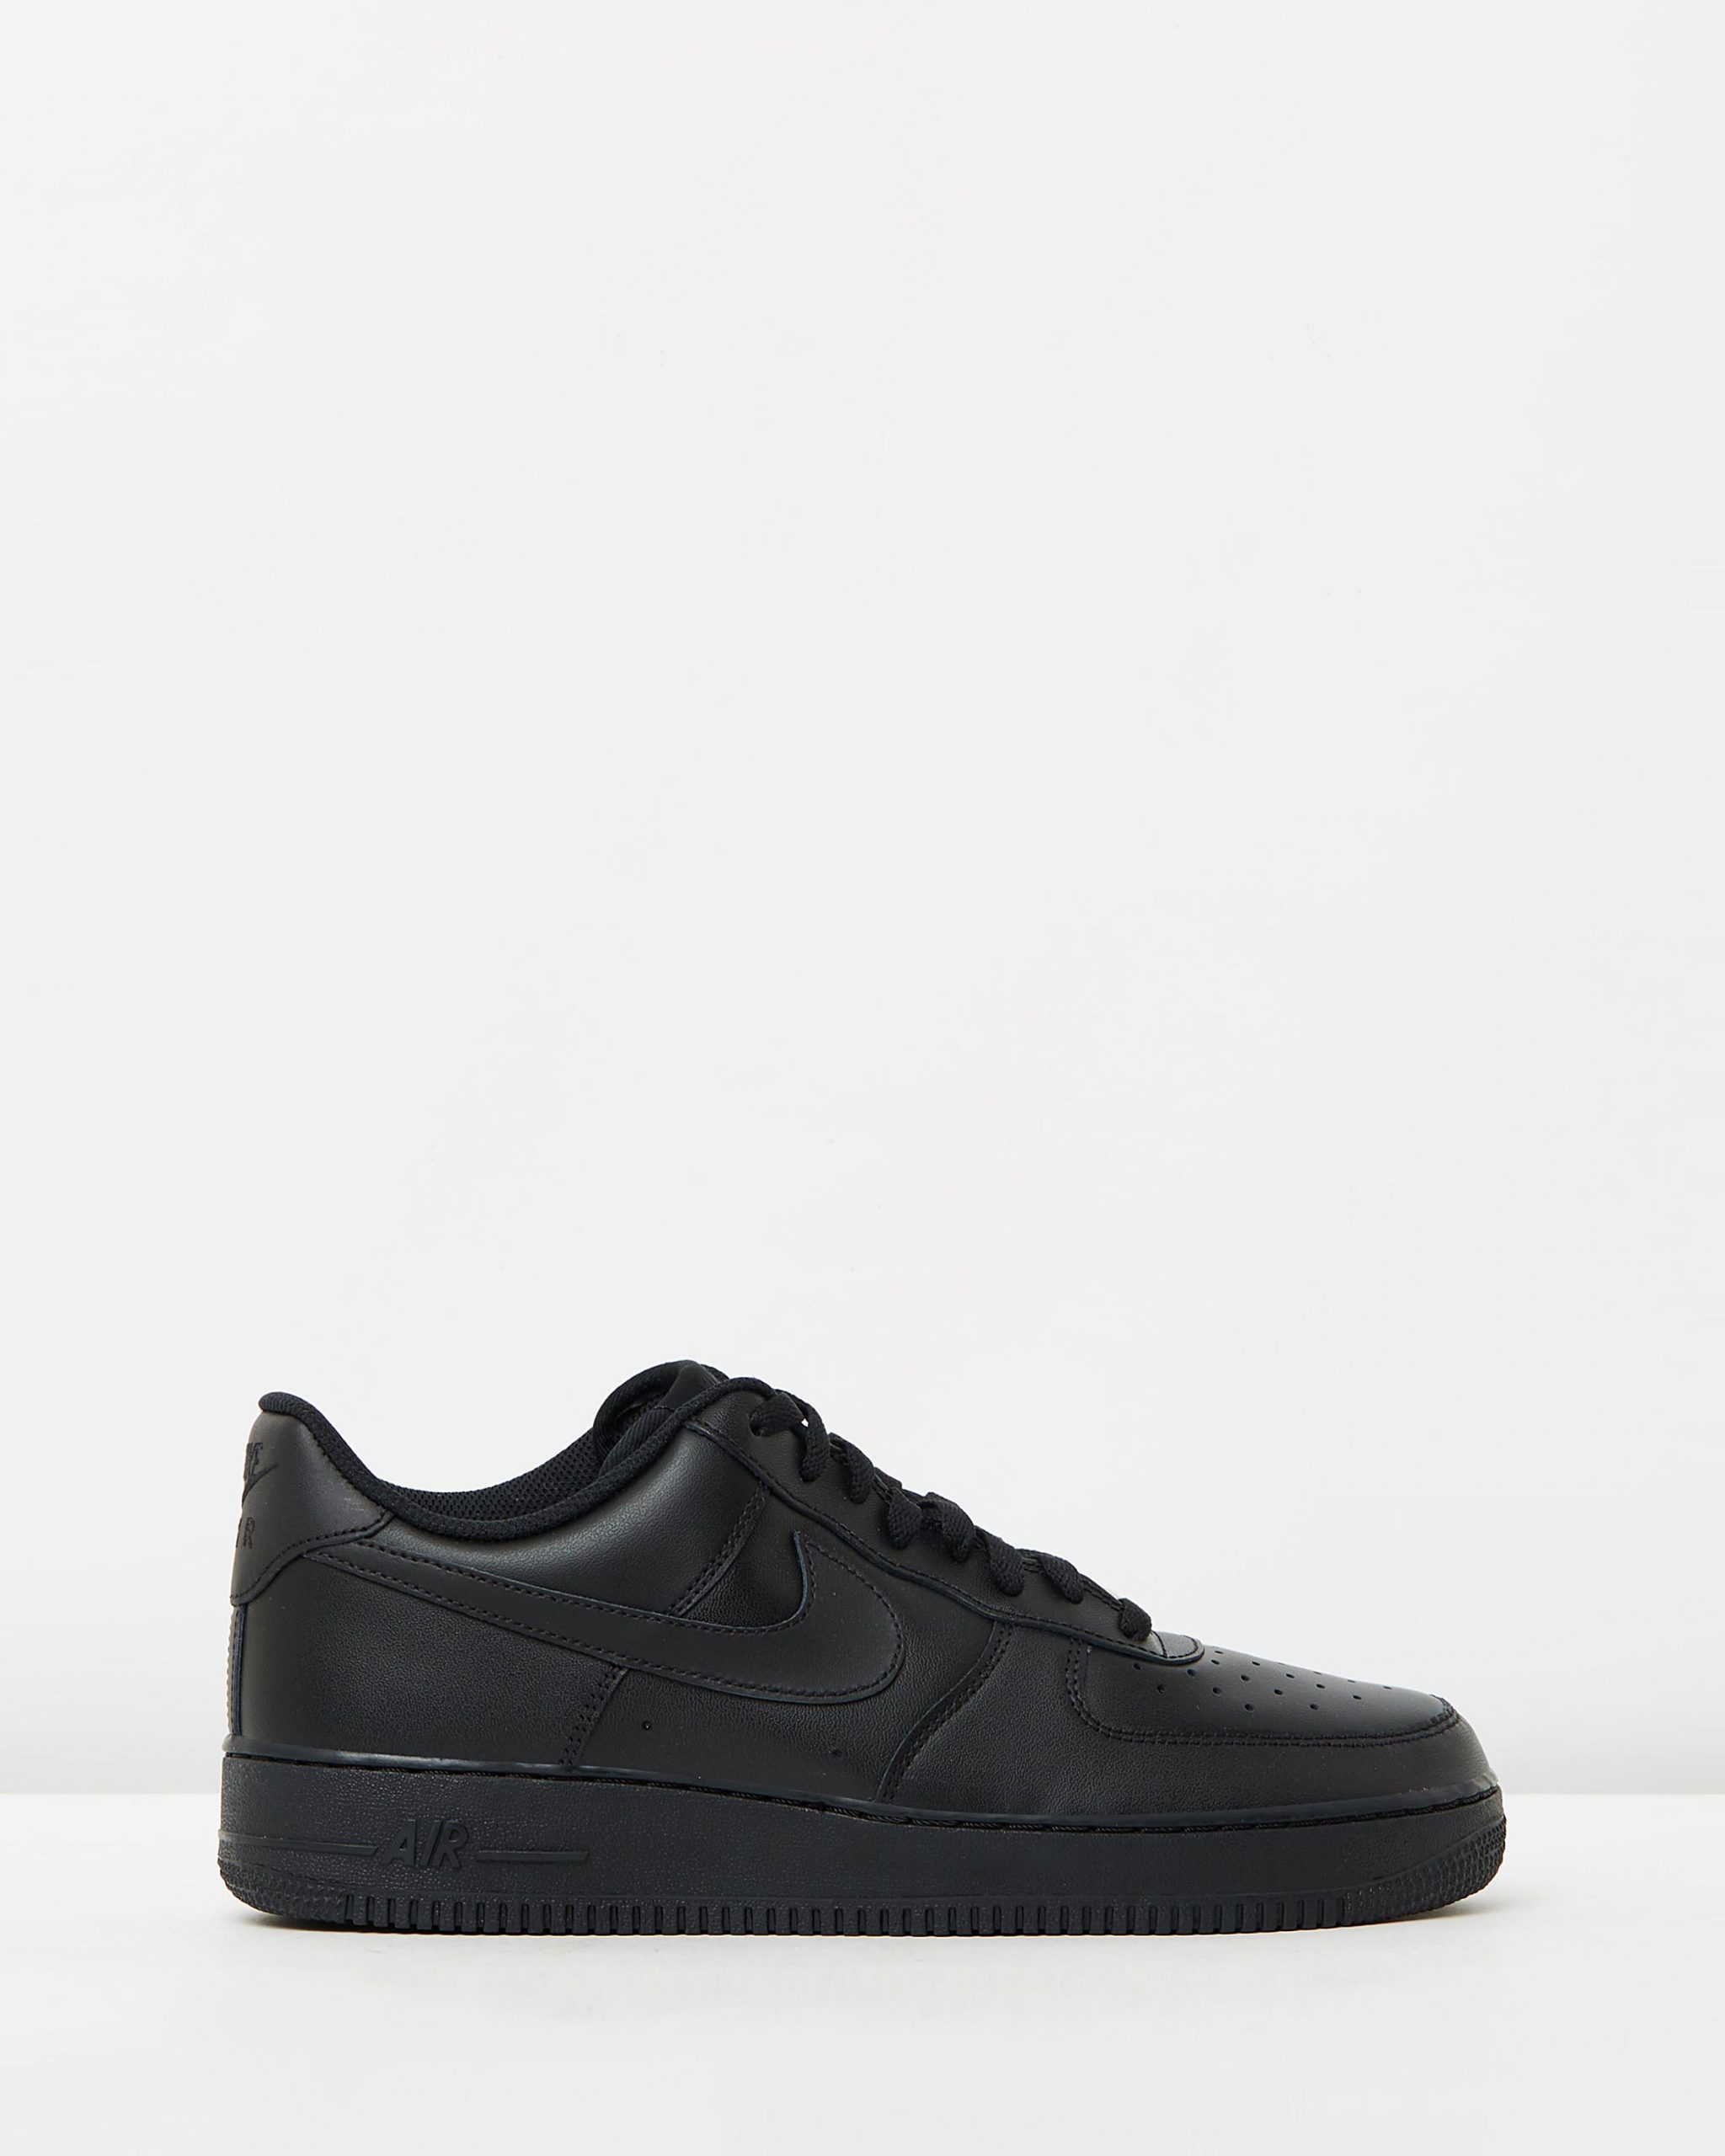 Nike Men's Air Force 1 '07 Black Sneakers